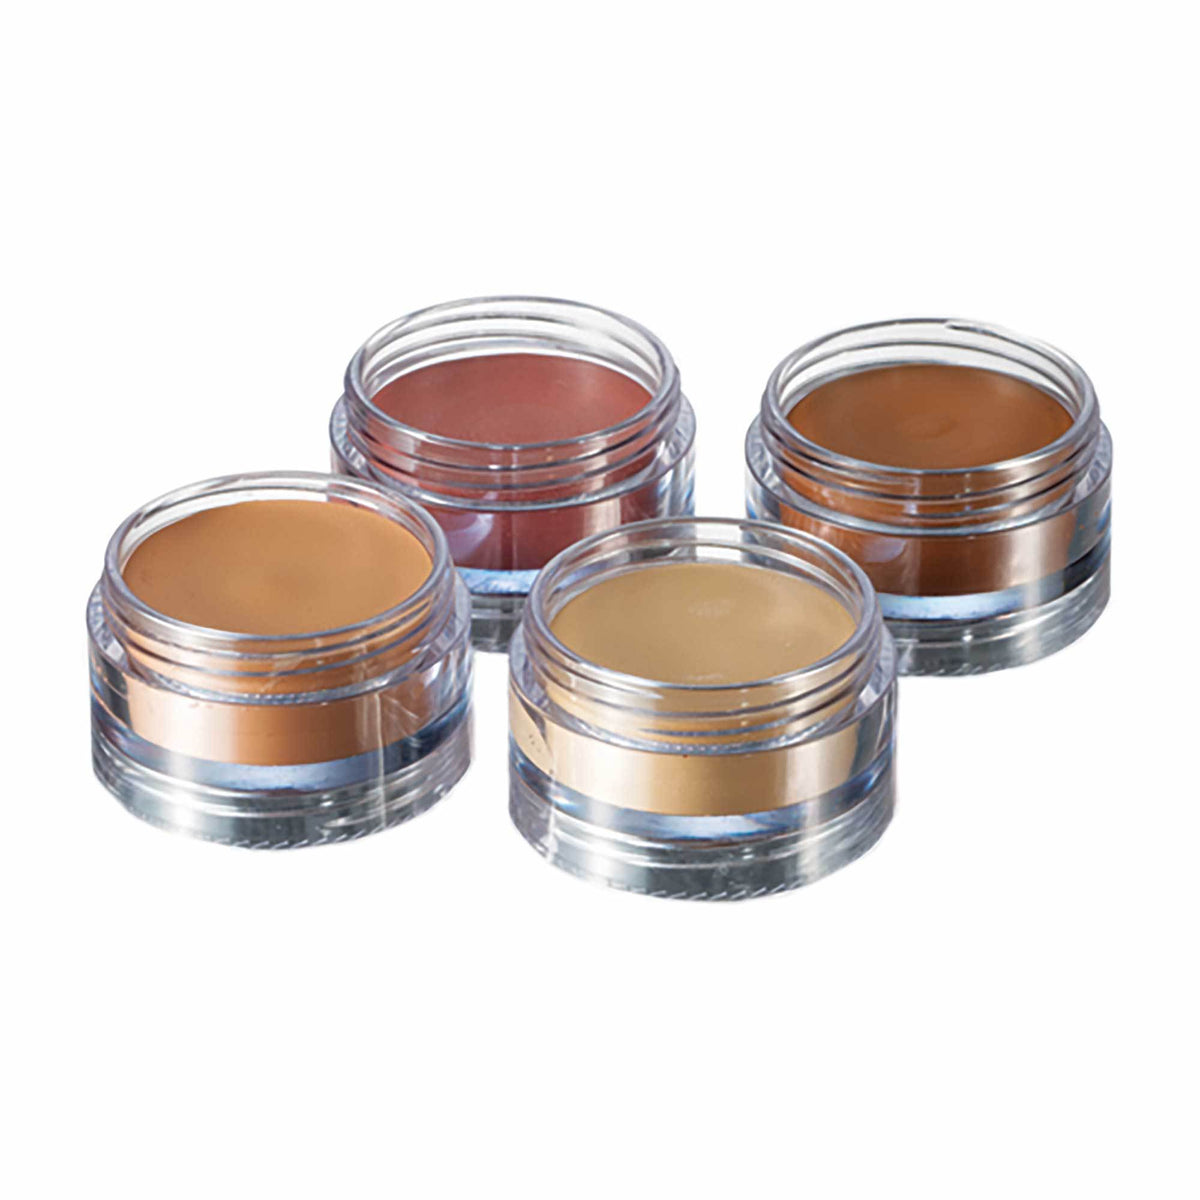 Ben Nye MediaPro HD Concealers - Red Carpet FX - Professional Makeup